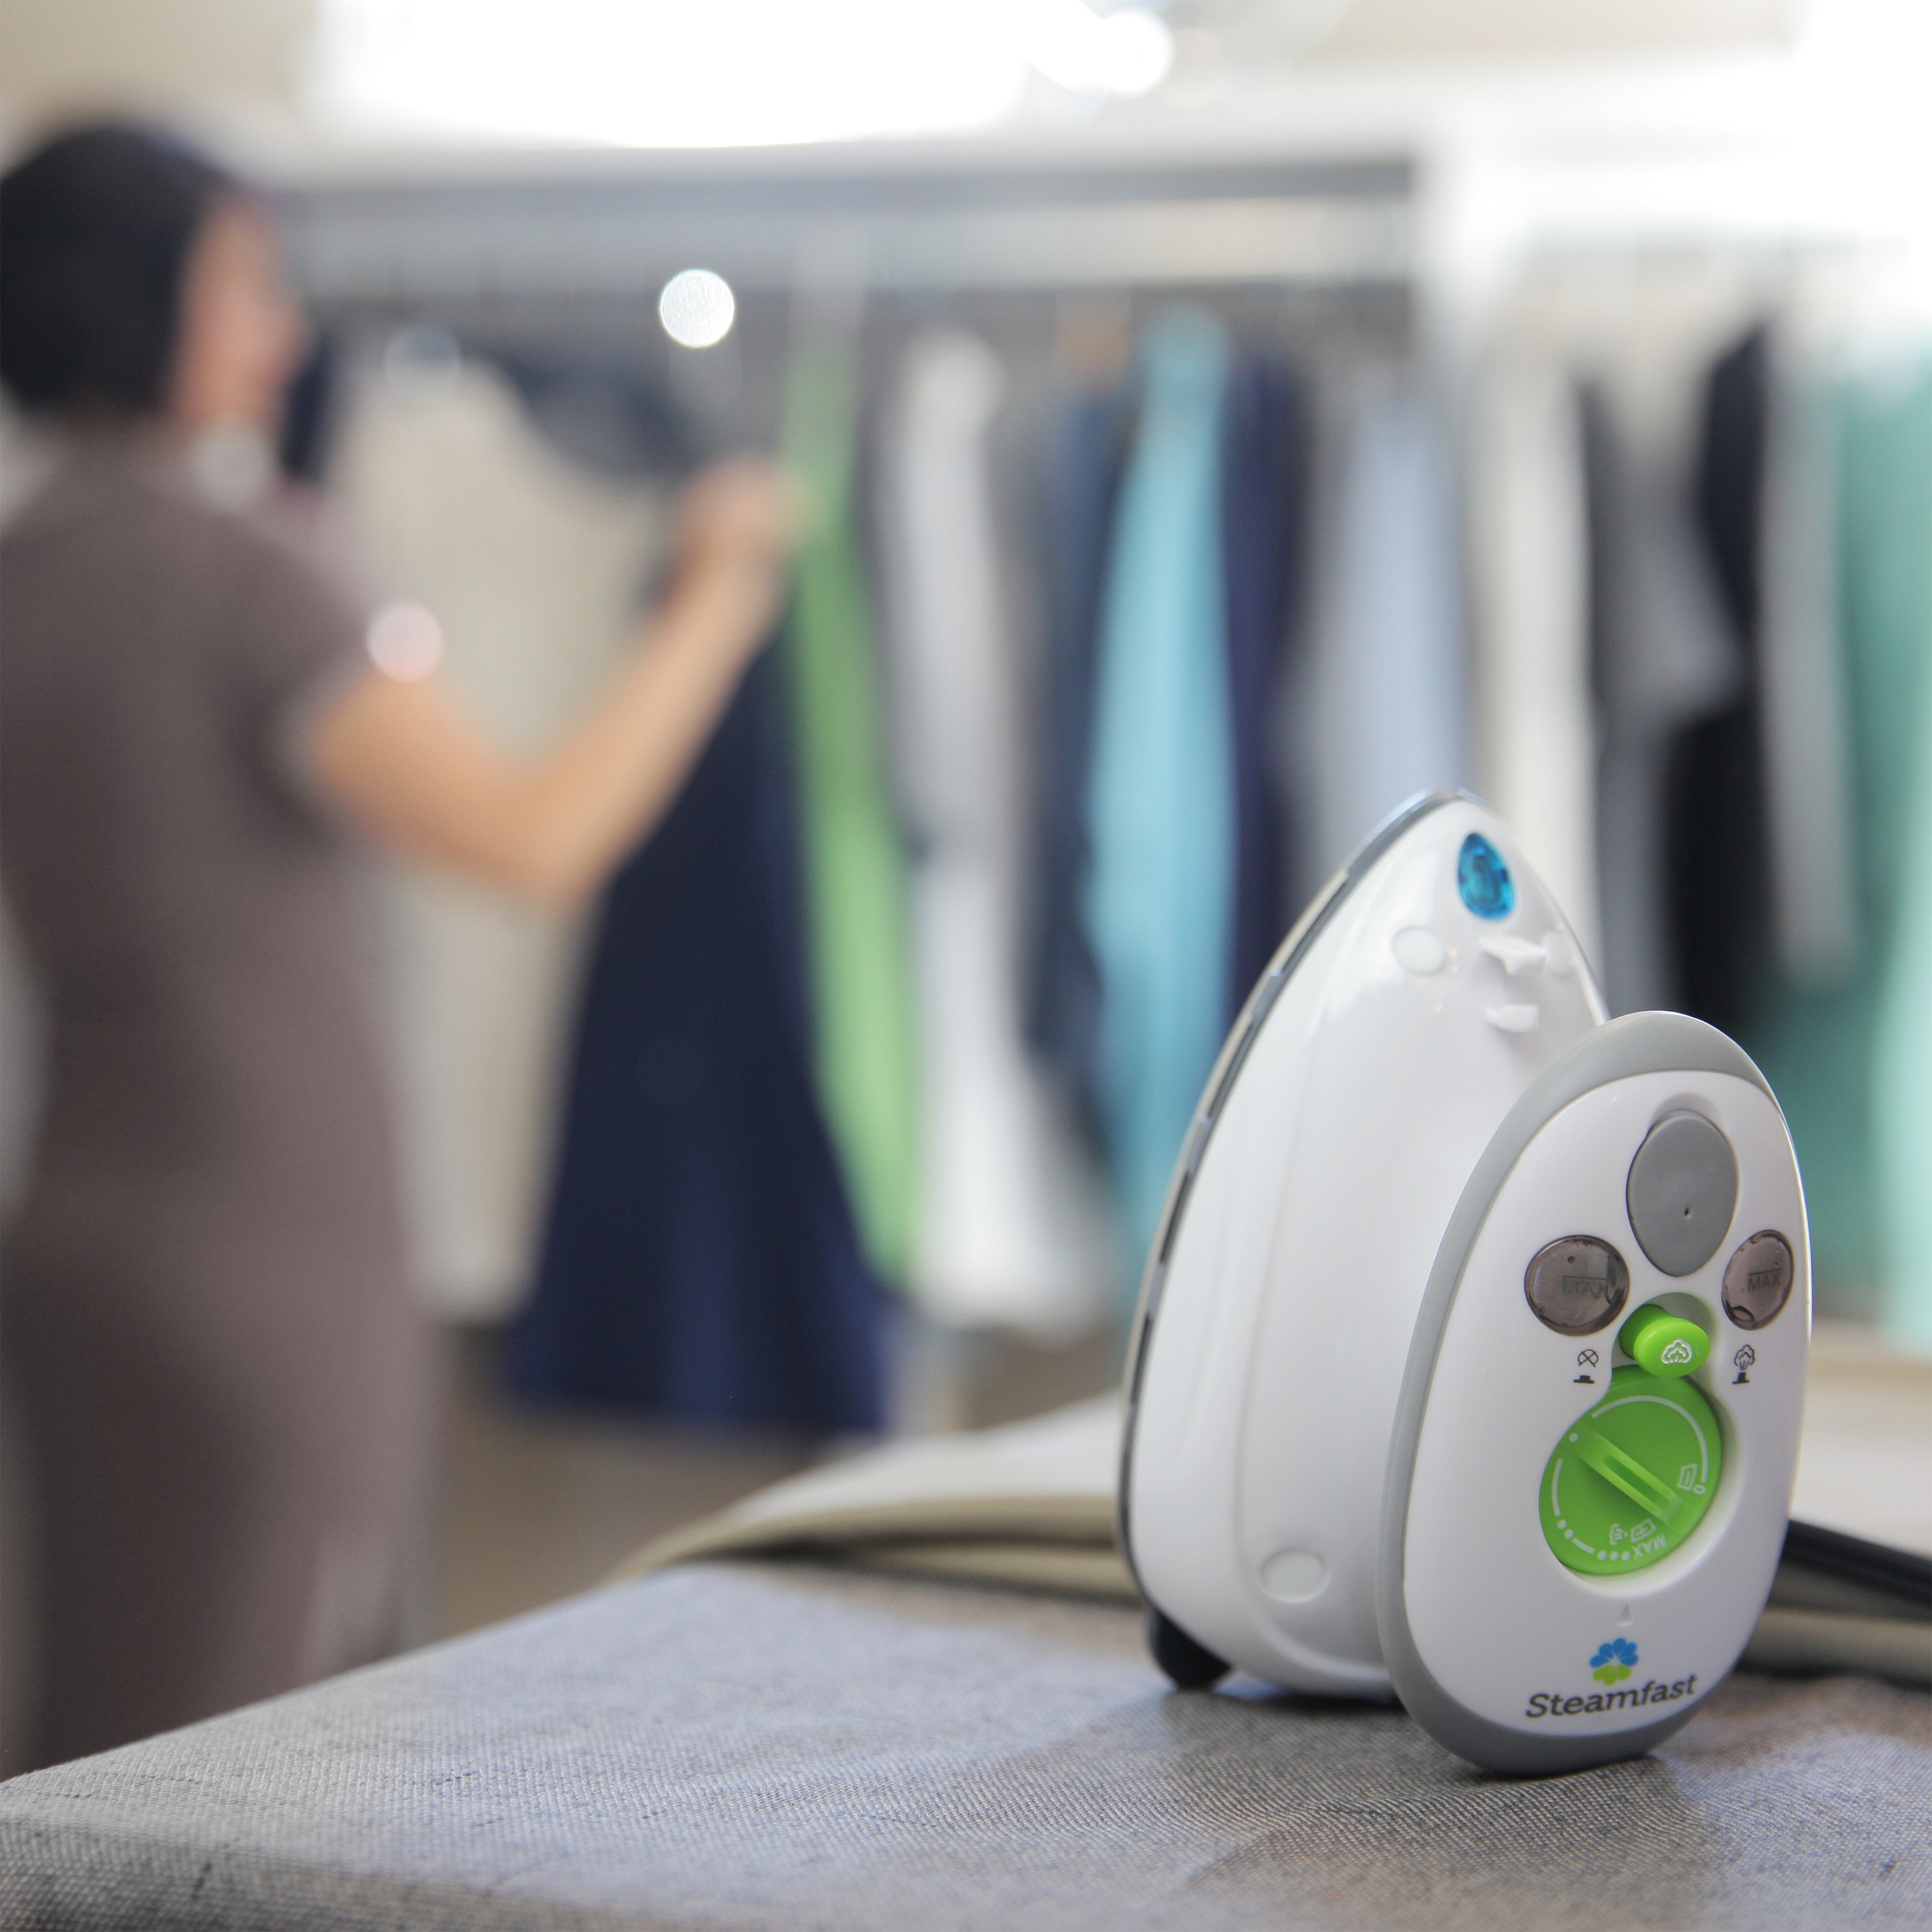 The mini steam iron on an ironing board